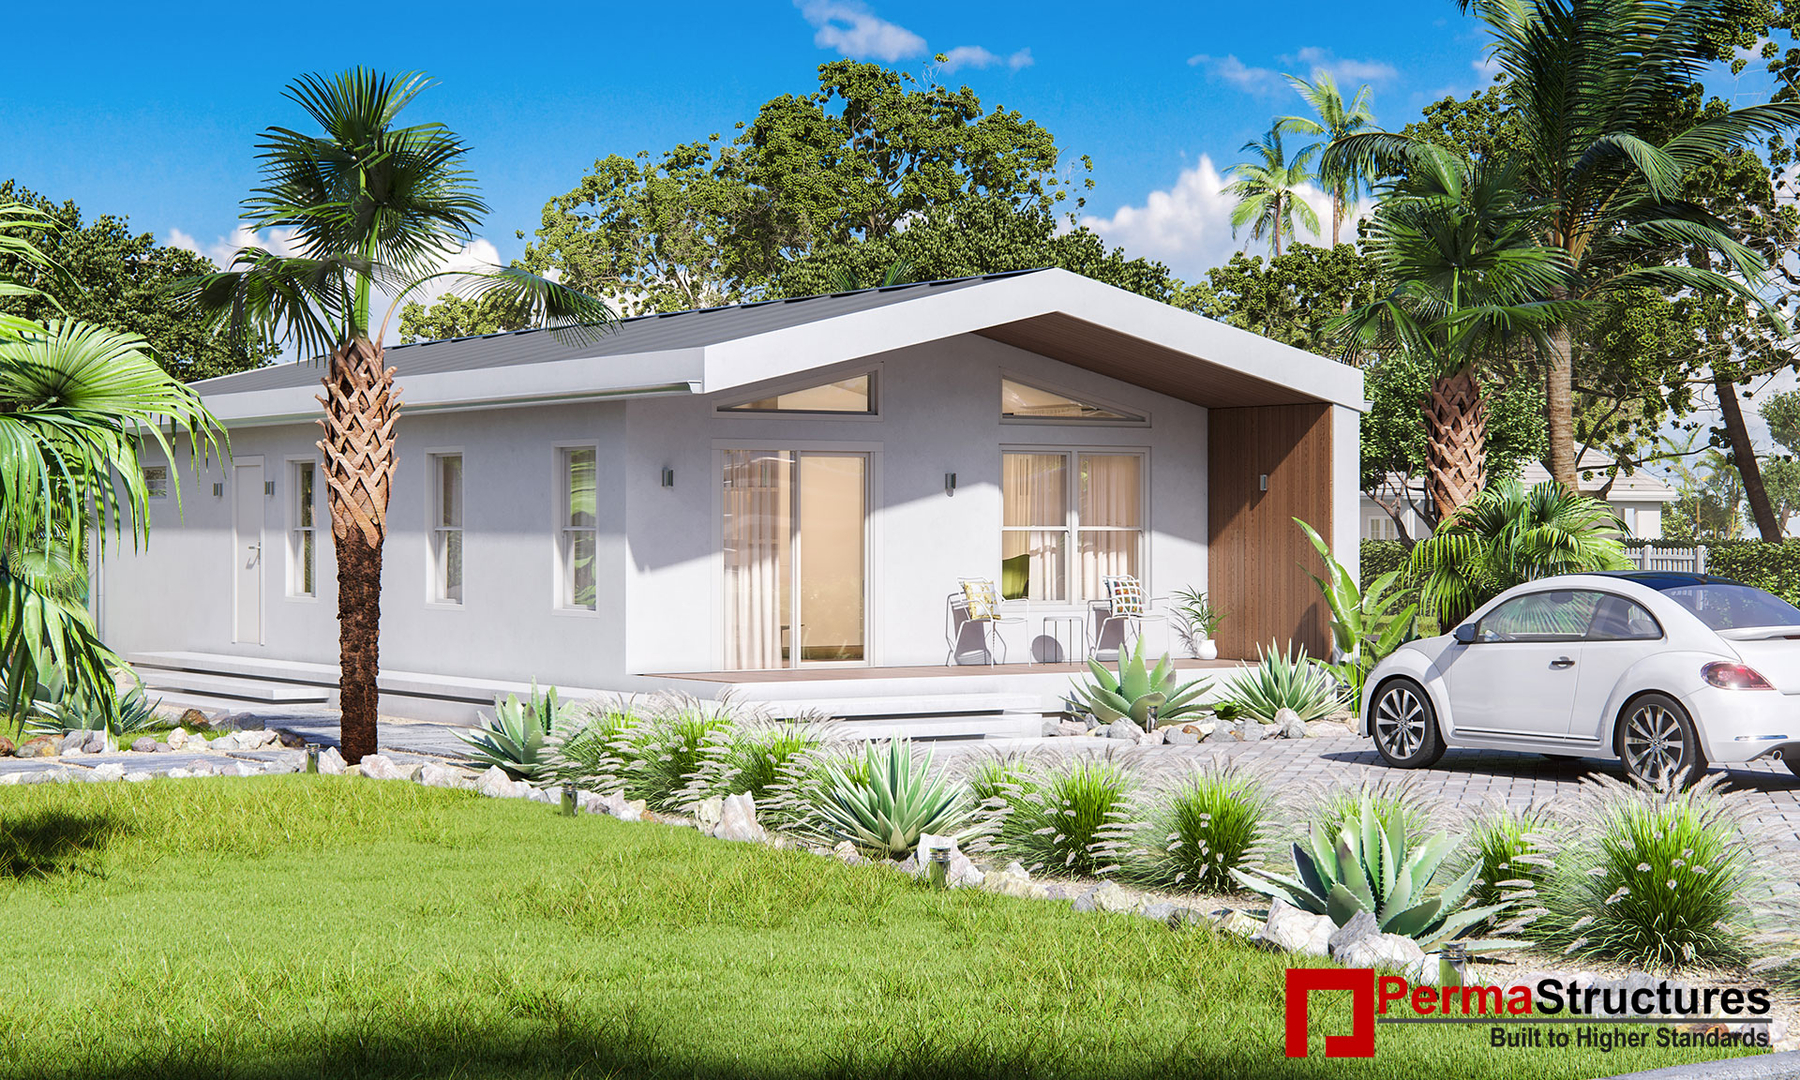 modular homes all of our houses will resist to winds of up to178 mph and earthquakes up to 8 0 on the richter scale